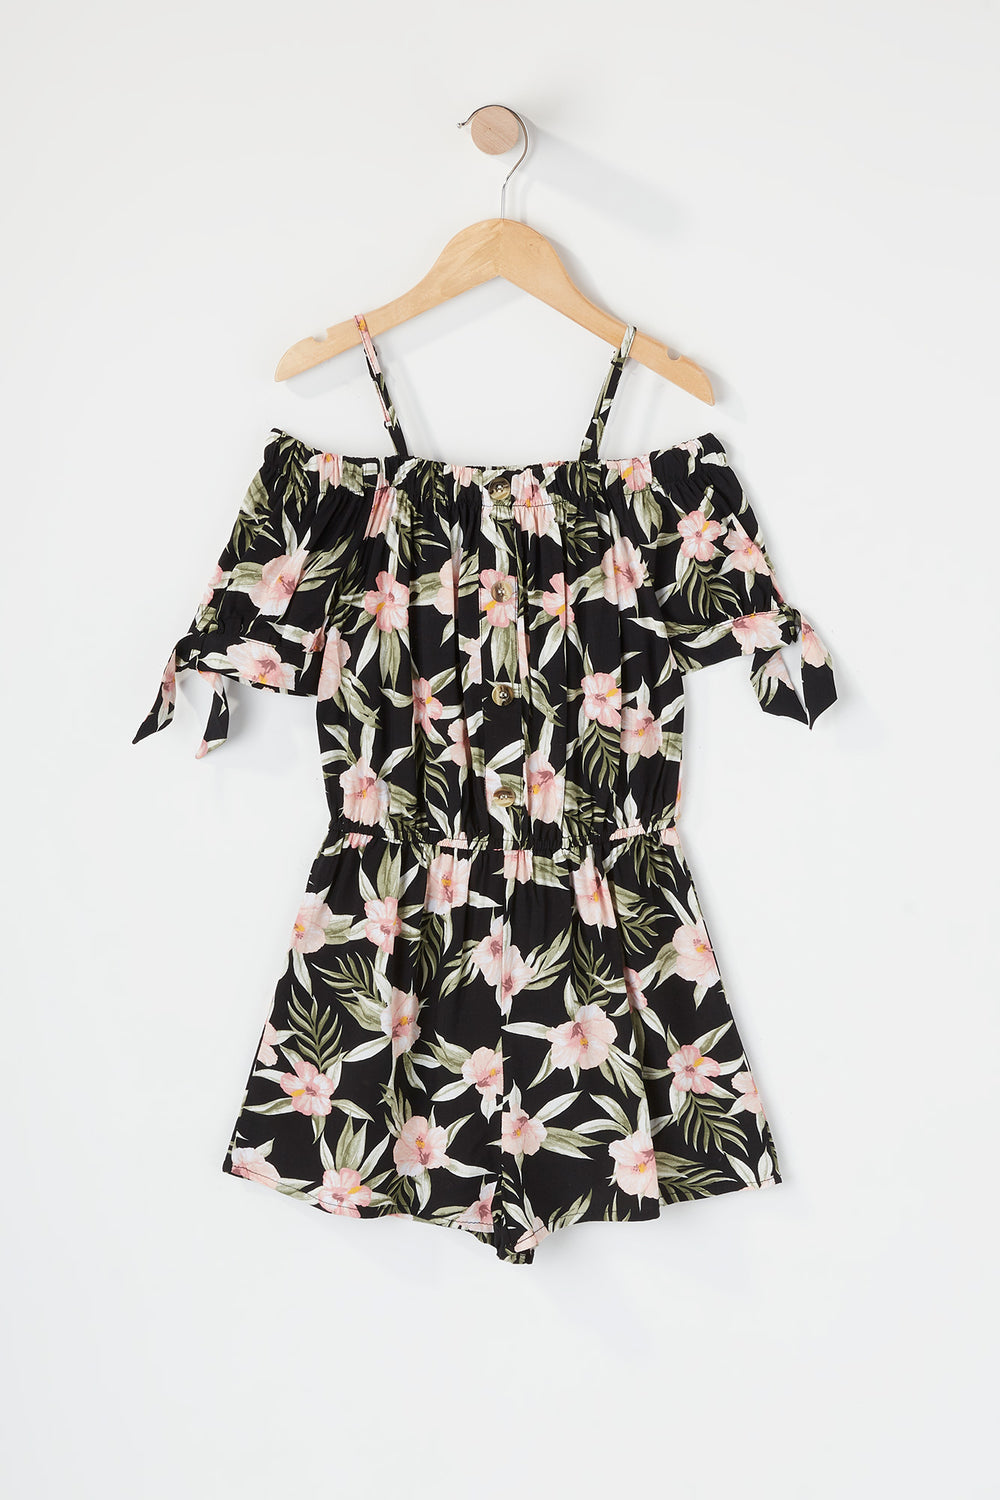 Girls Floral Off The Shoulder Romper Black